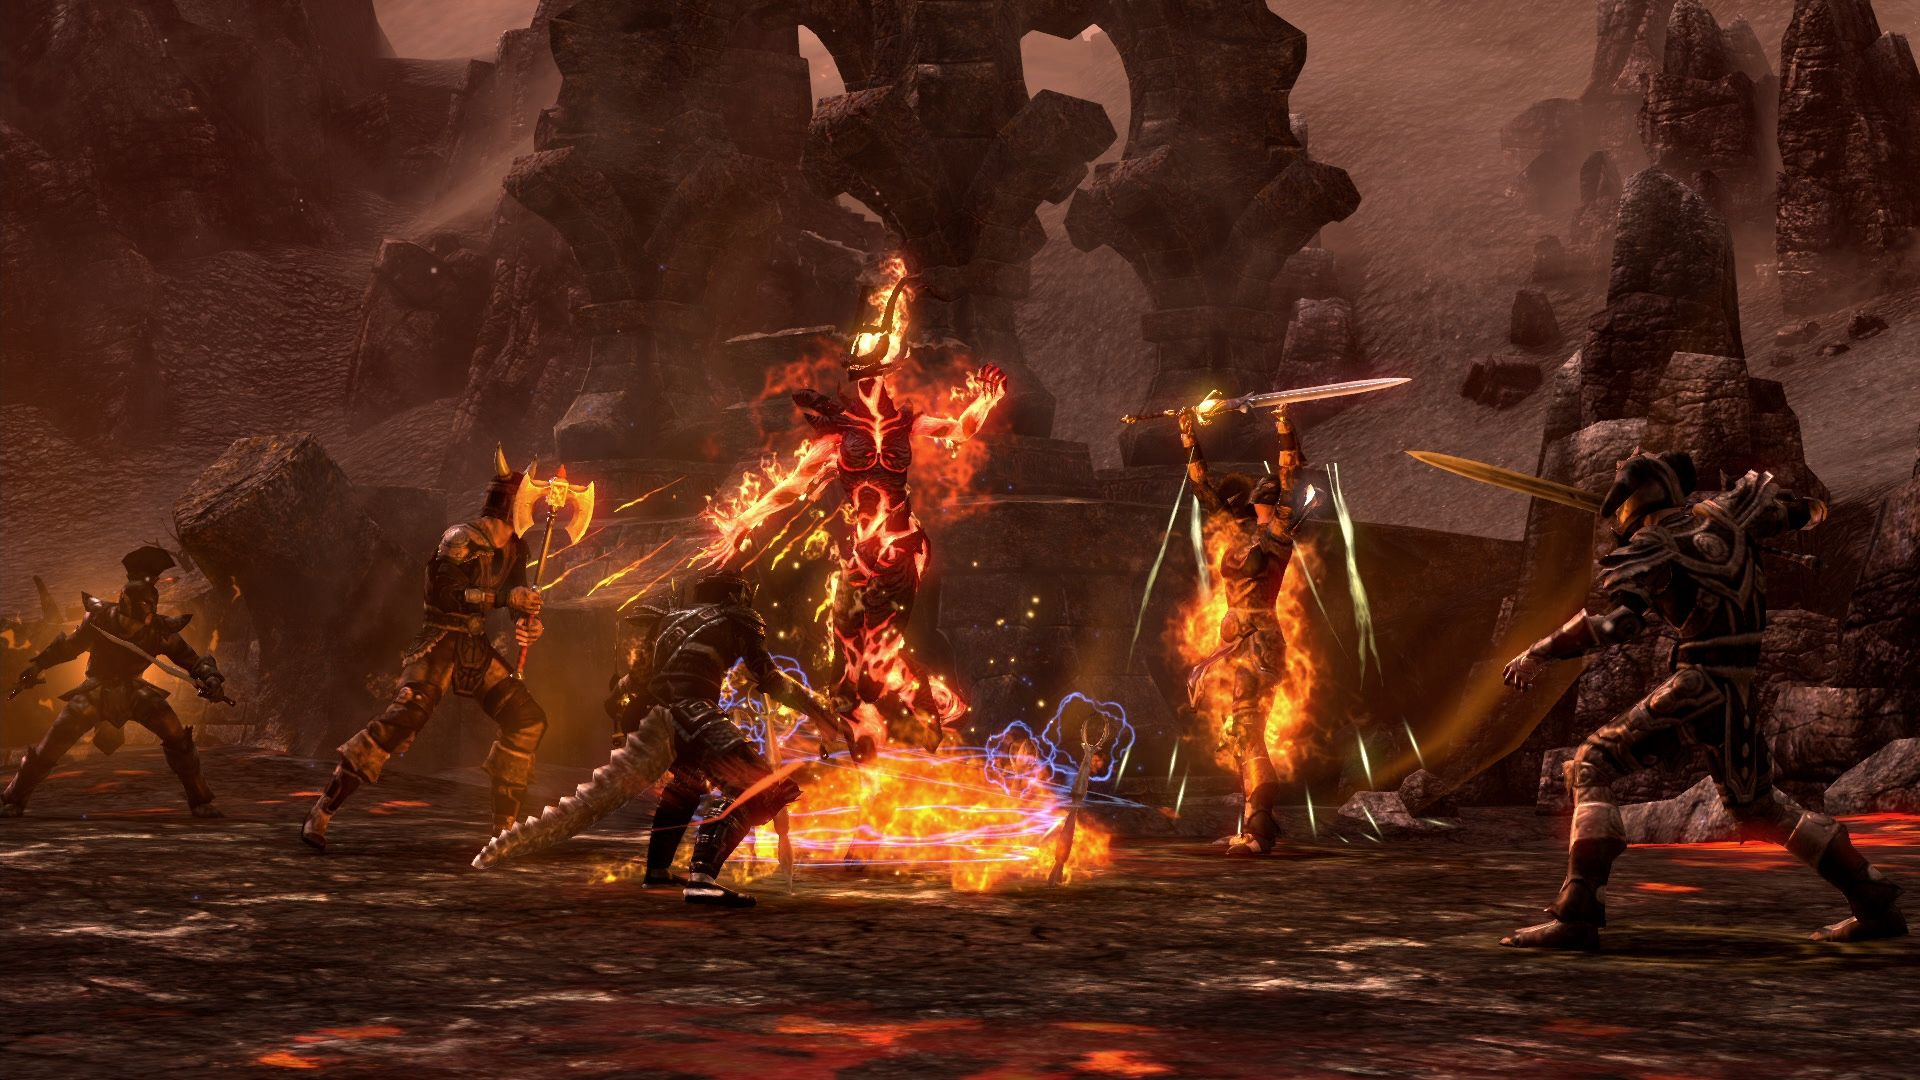 The Elder Scrolls Online won't require PS+, but Xbox One players